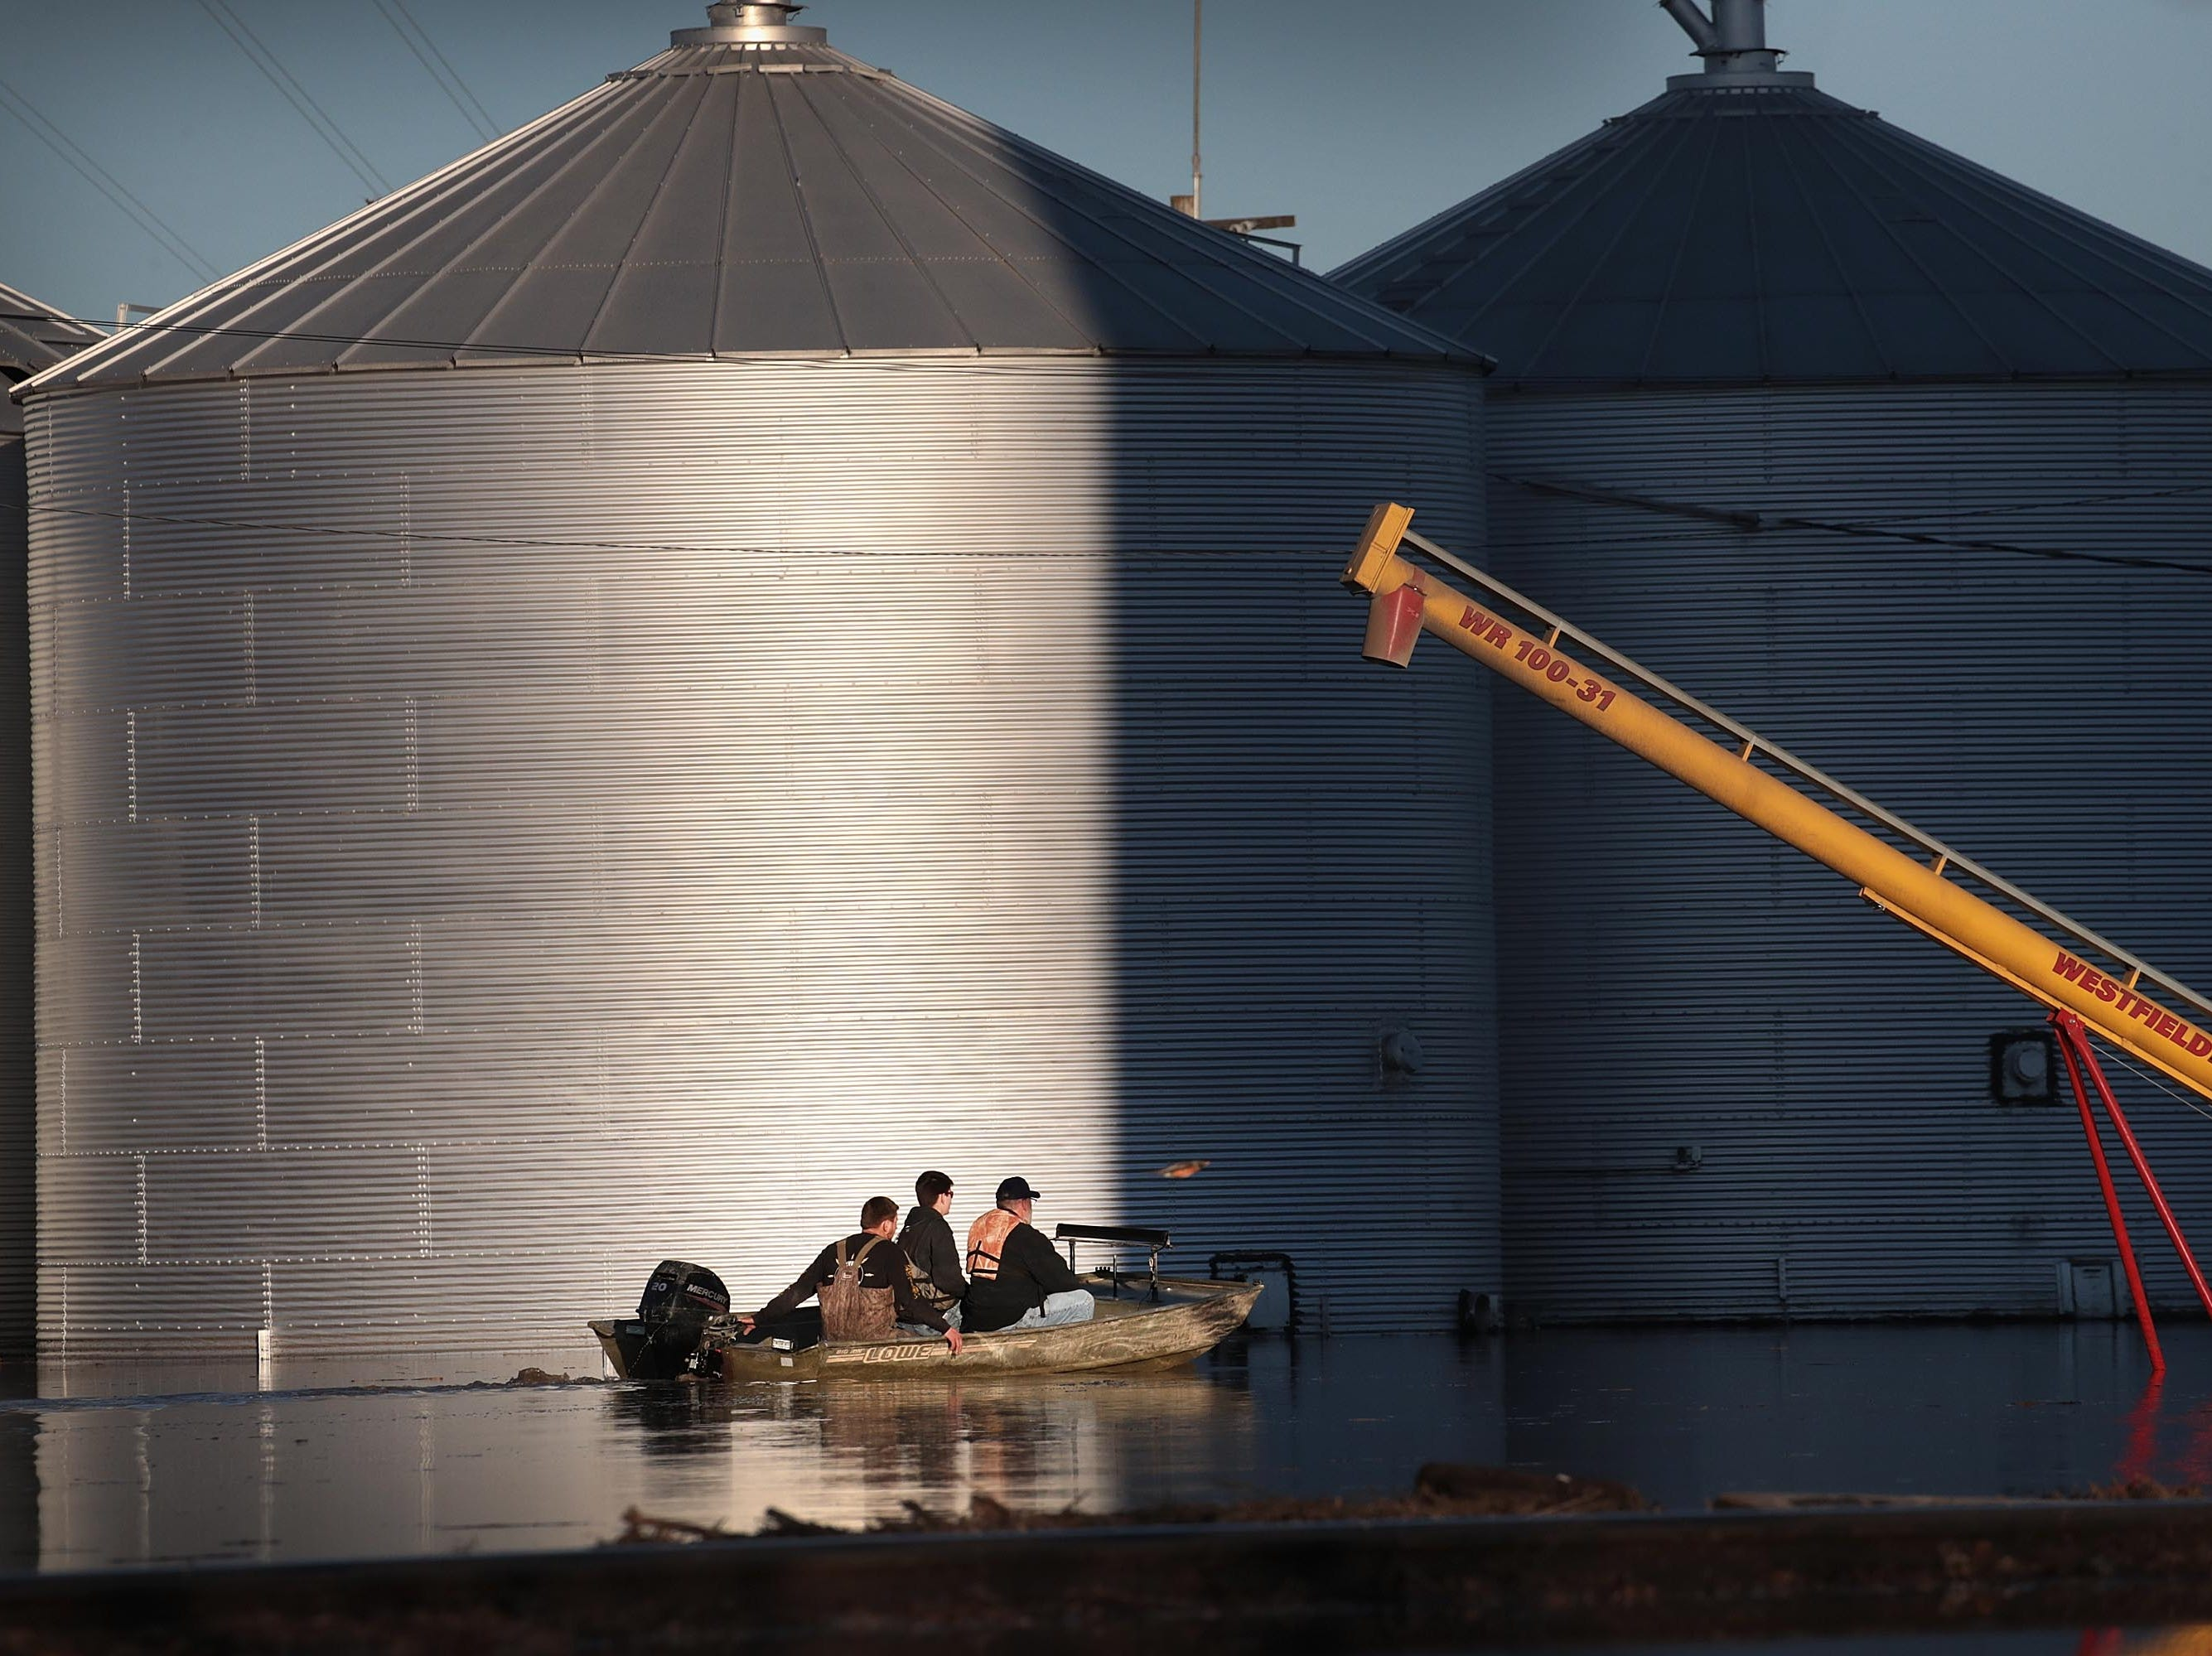 """A boat passes by grain bins which are surrounded by floodwater on March 21, 2019 in Craig, Mo. The town of Craig is completely surrounded by floodwater. Several Midwest states are battling some of the worst flooding they have experienced in decades as rain and snow melt from the recent """"bomb cyclone"""" has inundated rivers and streams. At least three deaths have been linked to the flooding."""